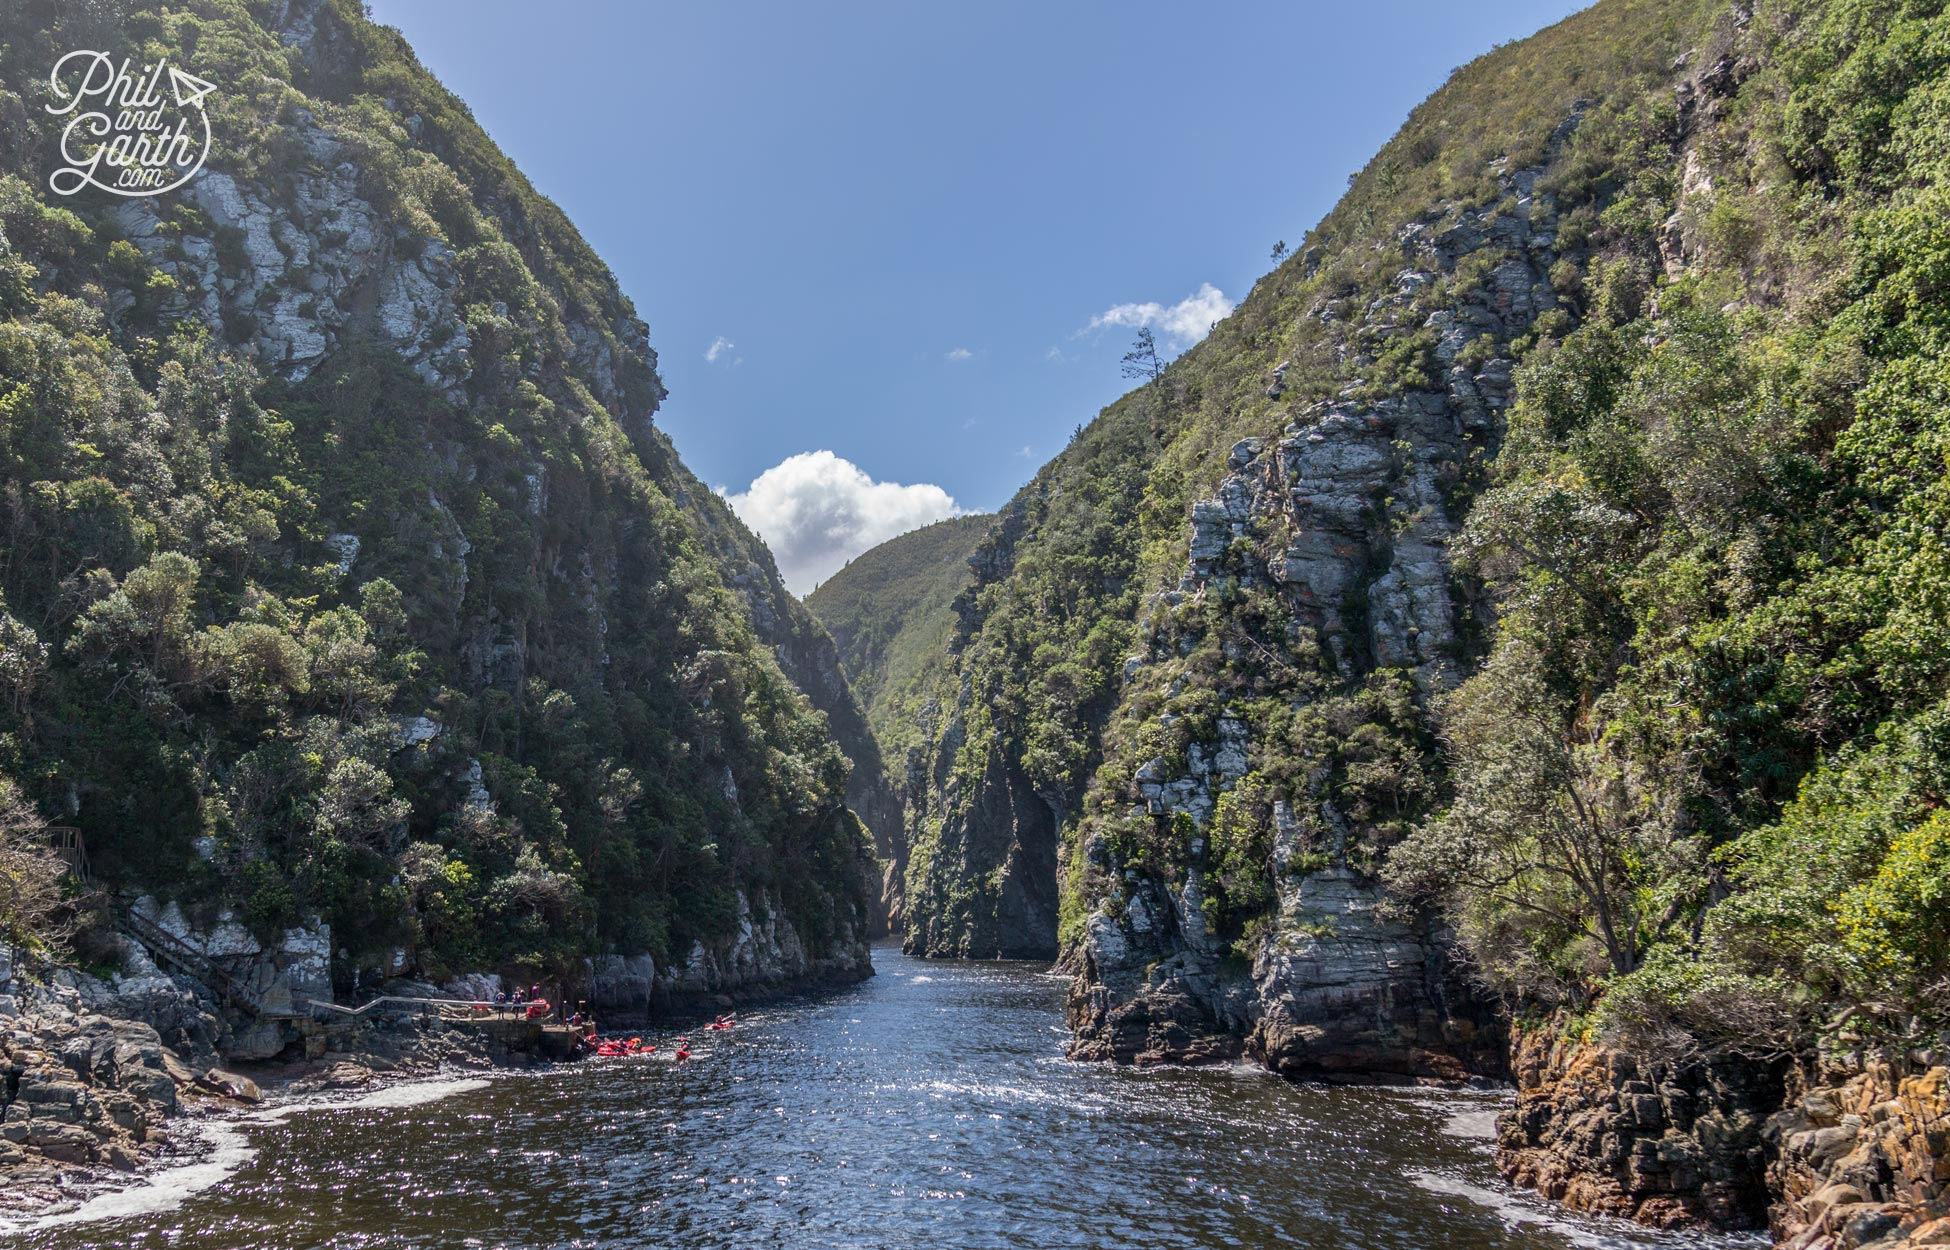 Kayaking, snorkelling and scuba opportunities in the gorge - ask at the boat house